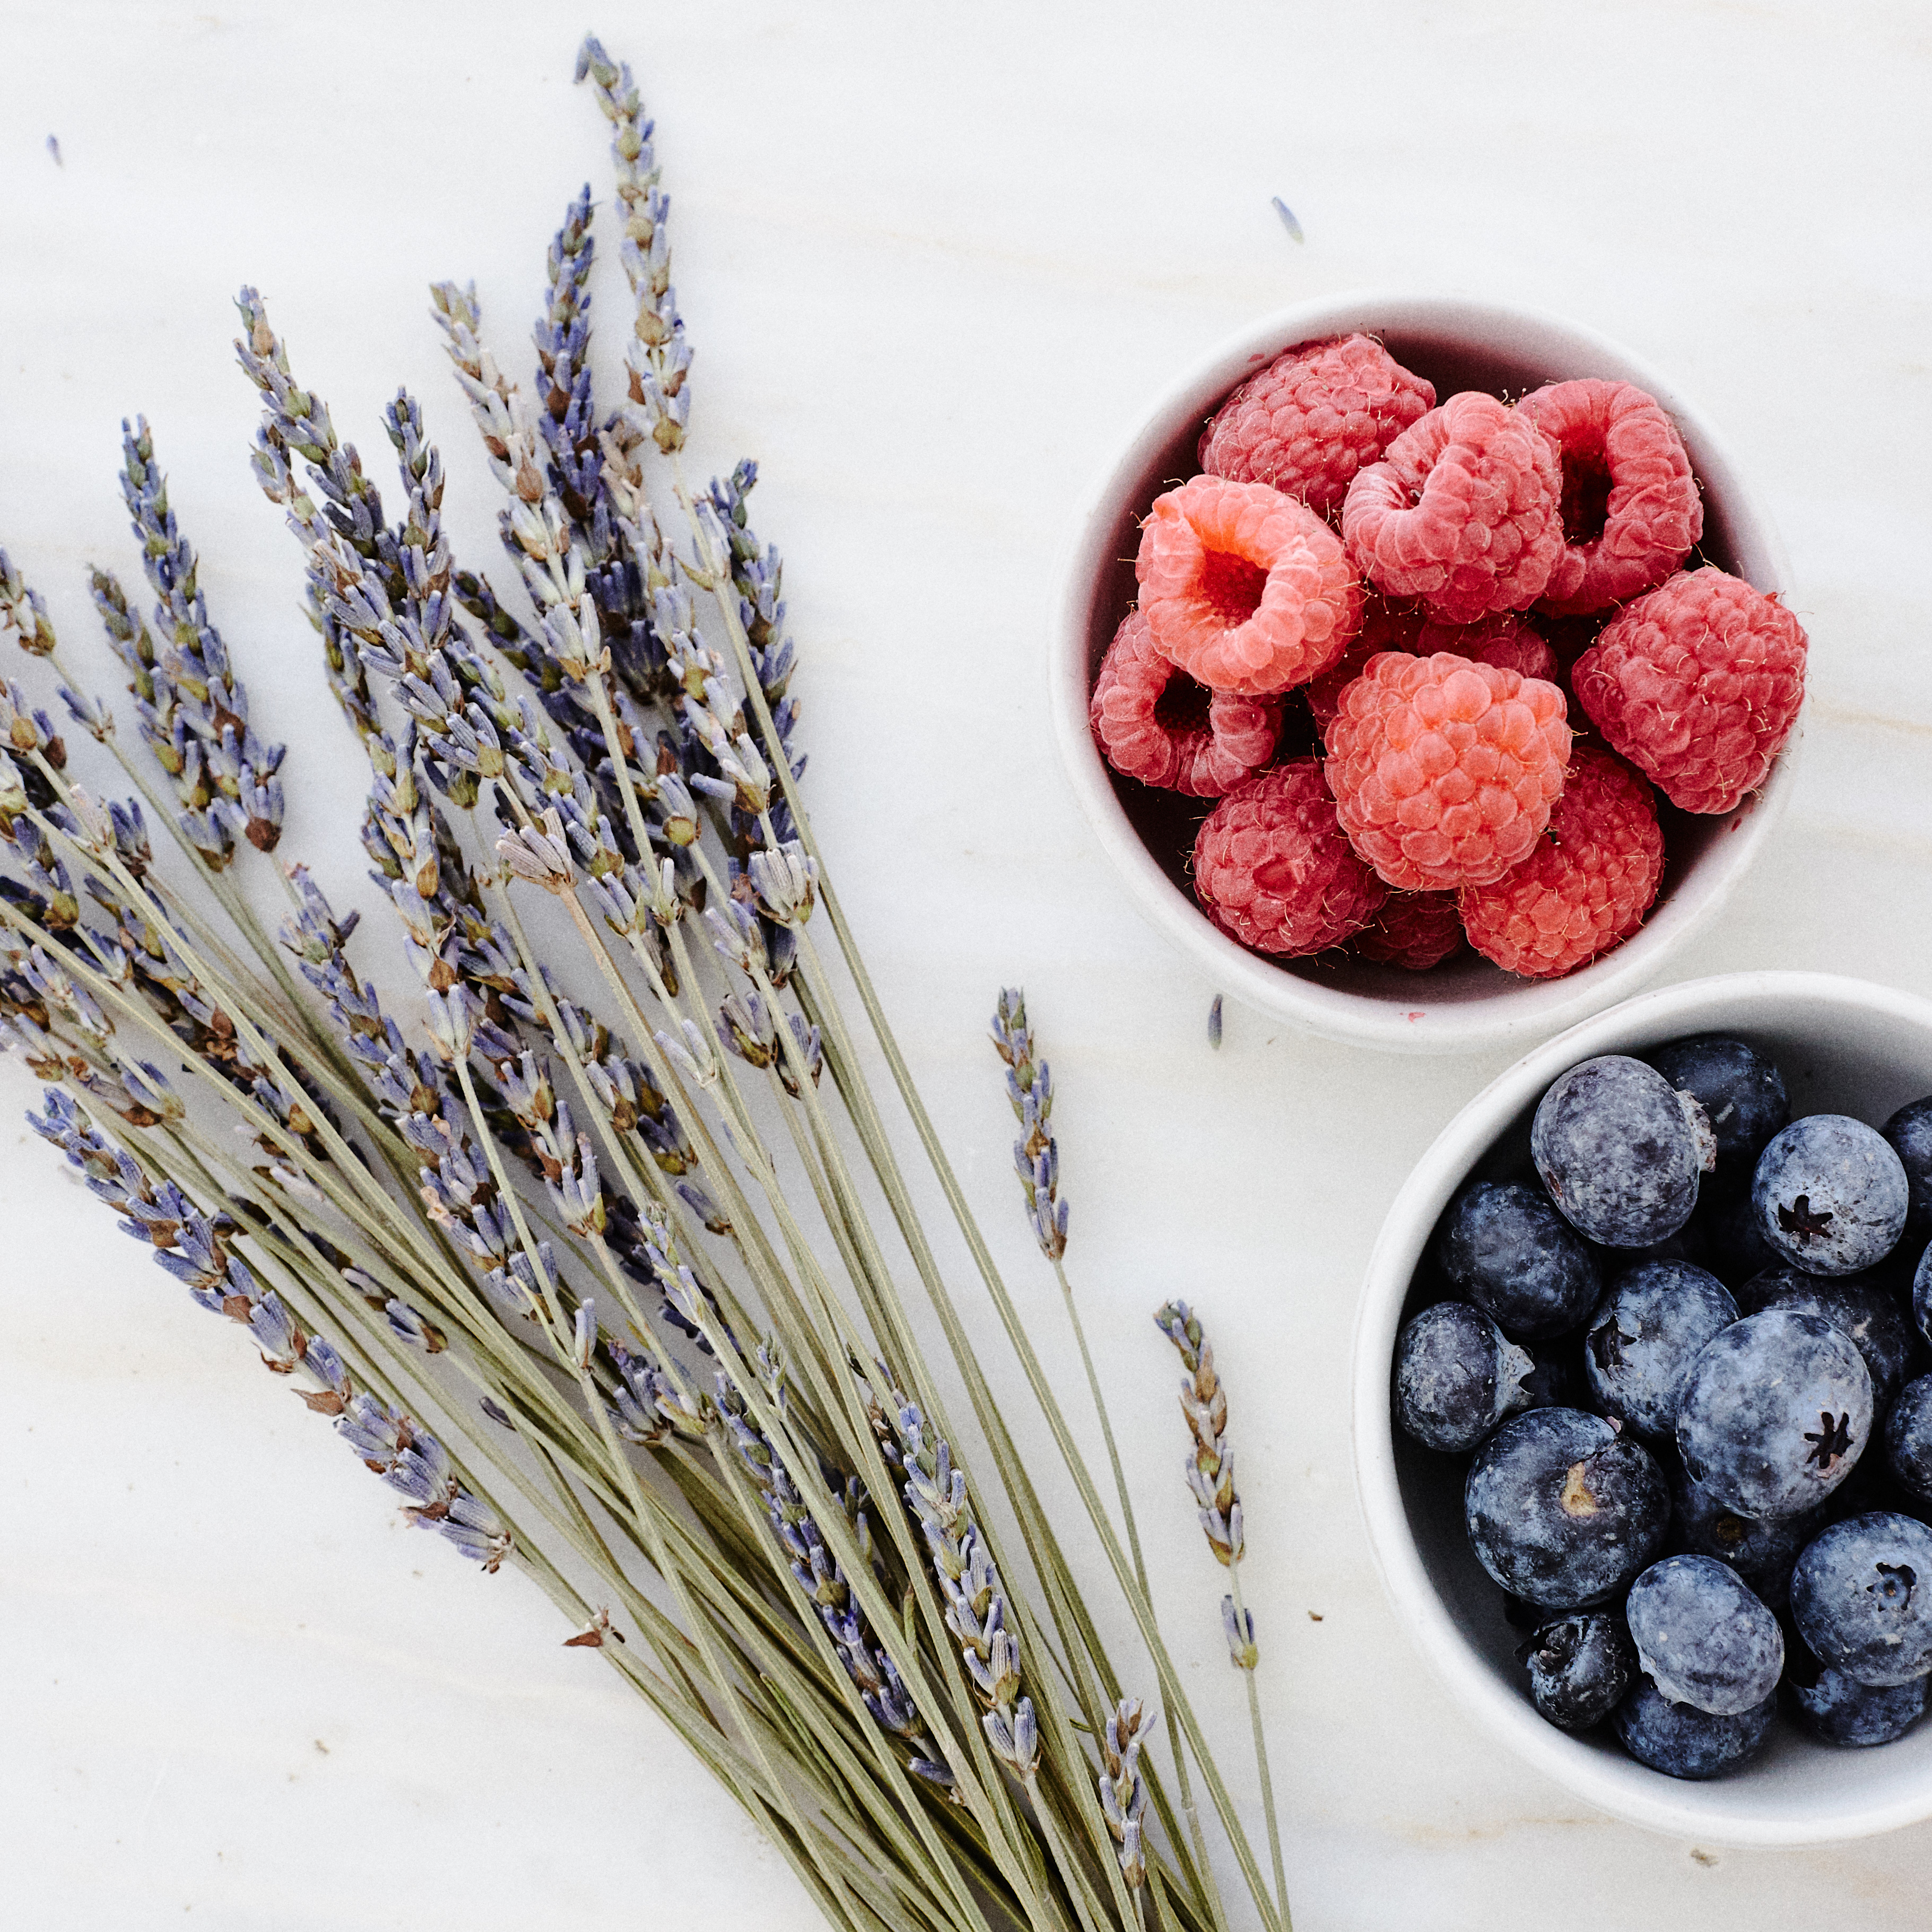 Bowls of raspberries and bluberries with lavender plant